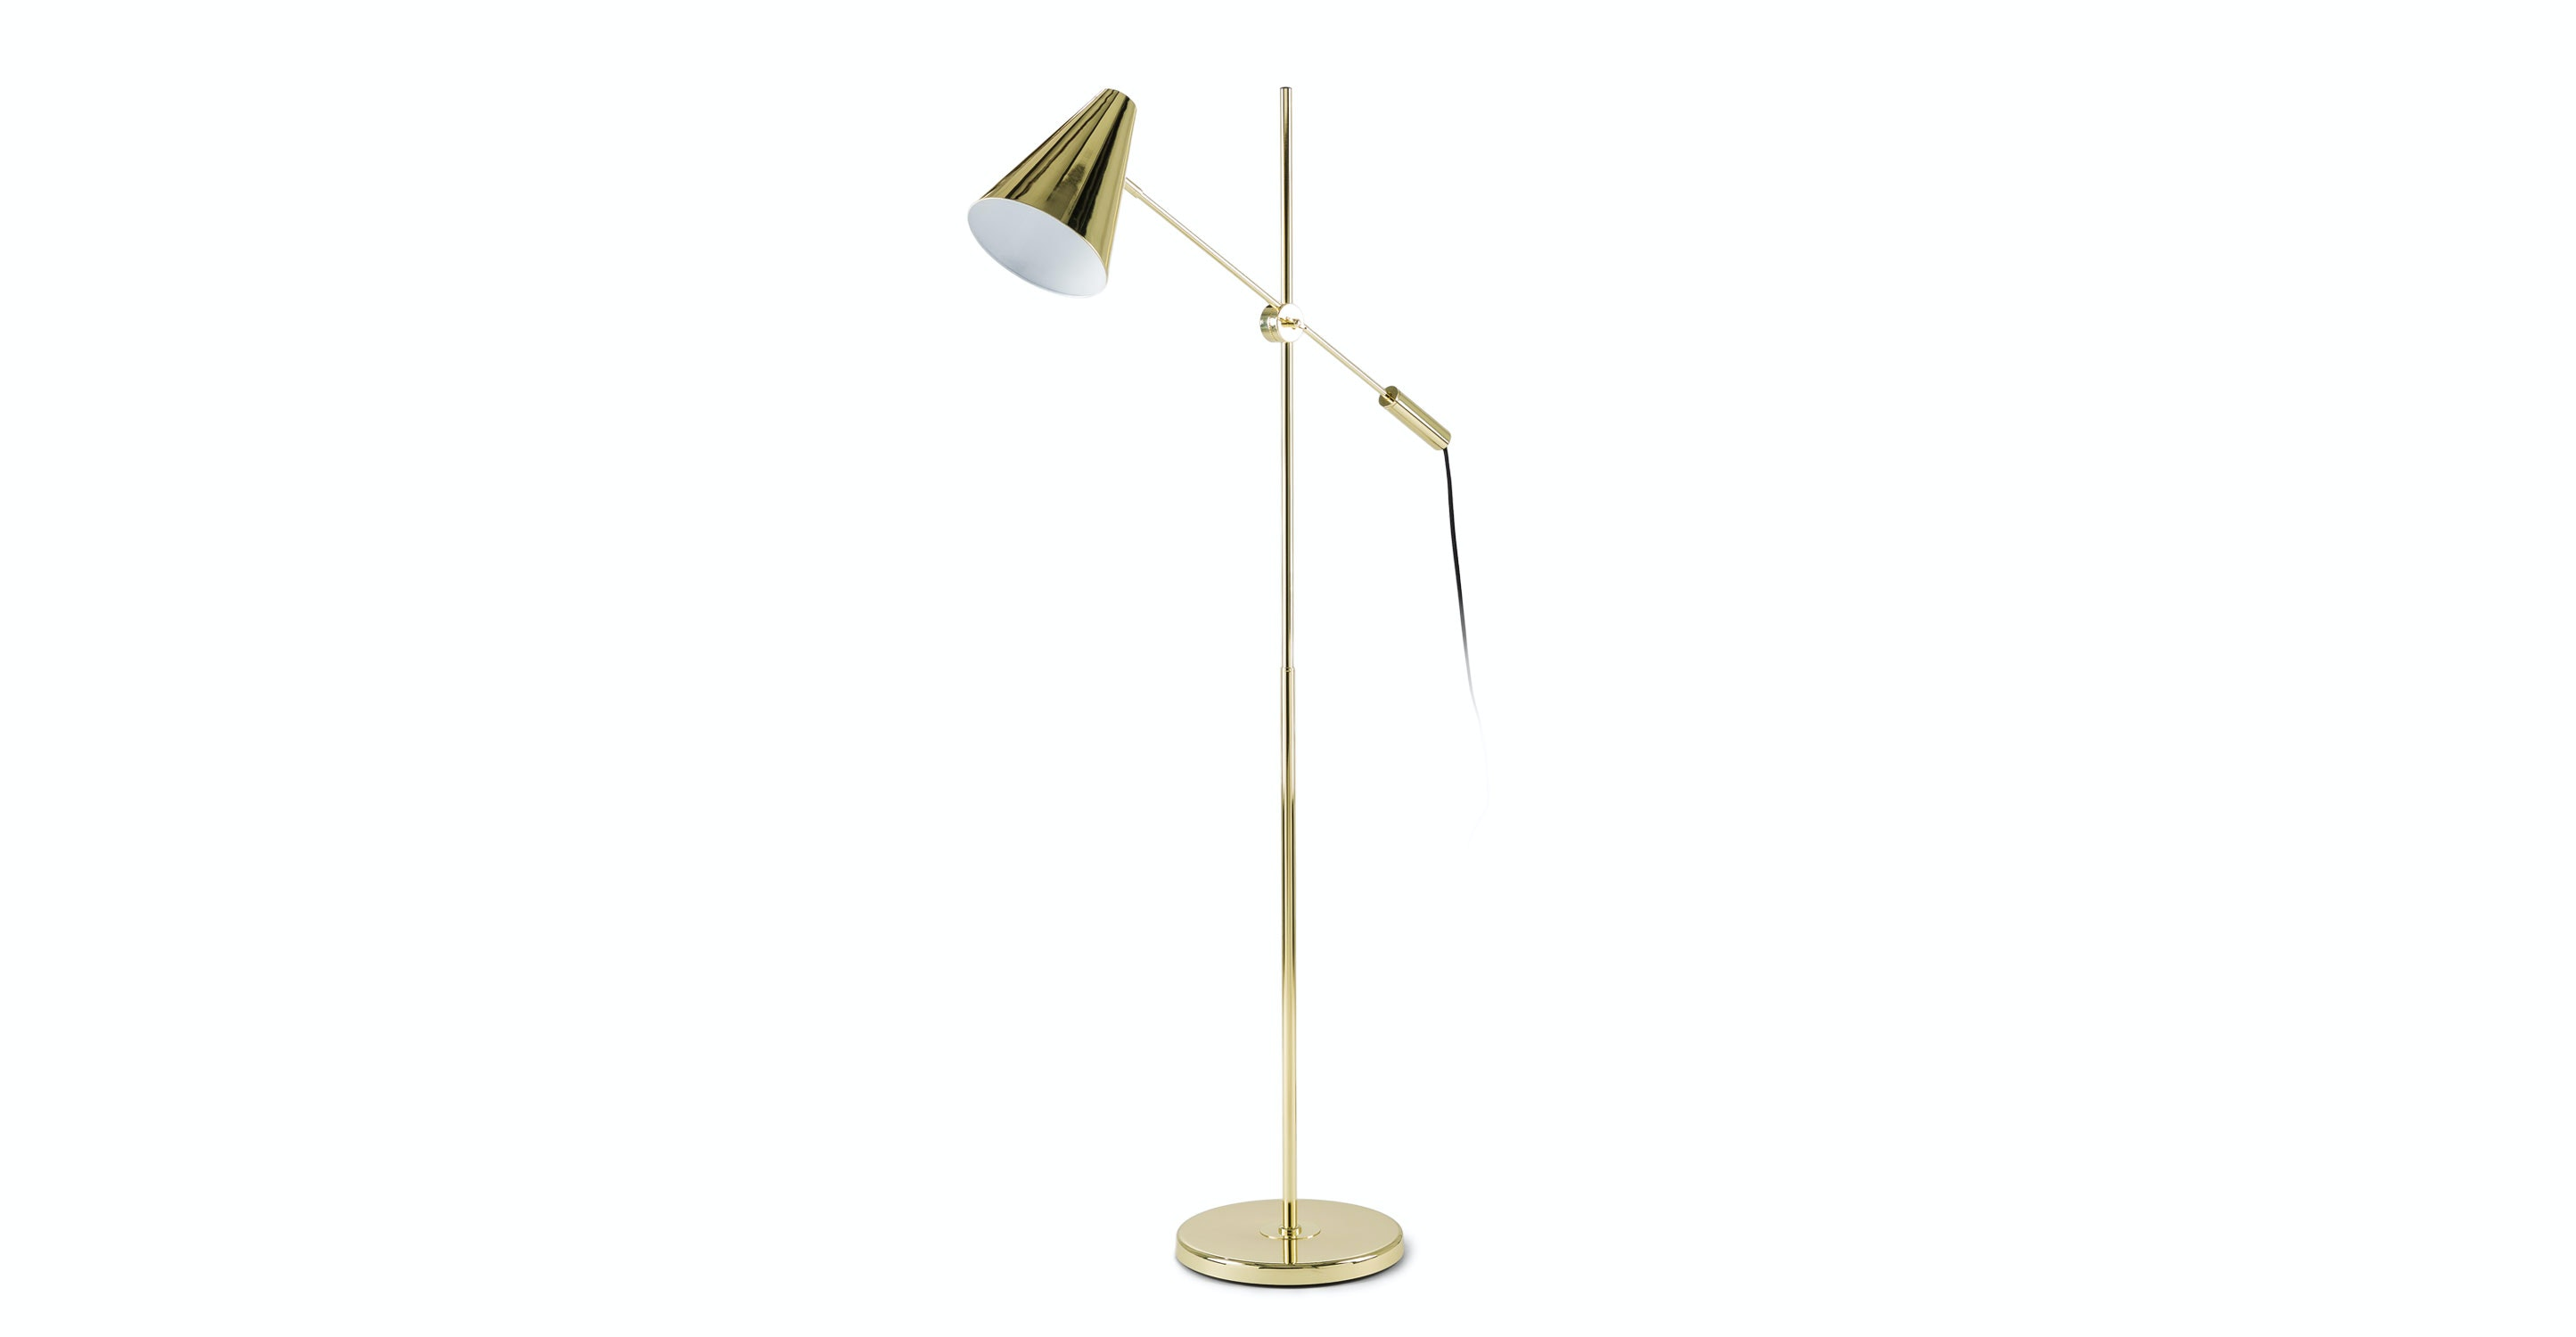 pictures of espresso kitchen cabinets beam single brass floor lamp lighting article modern 24673